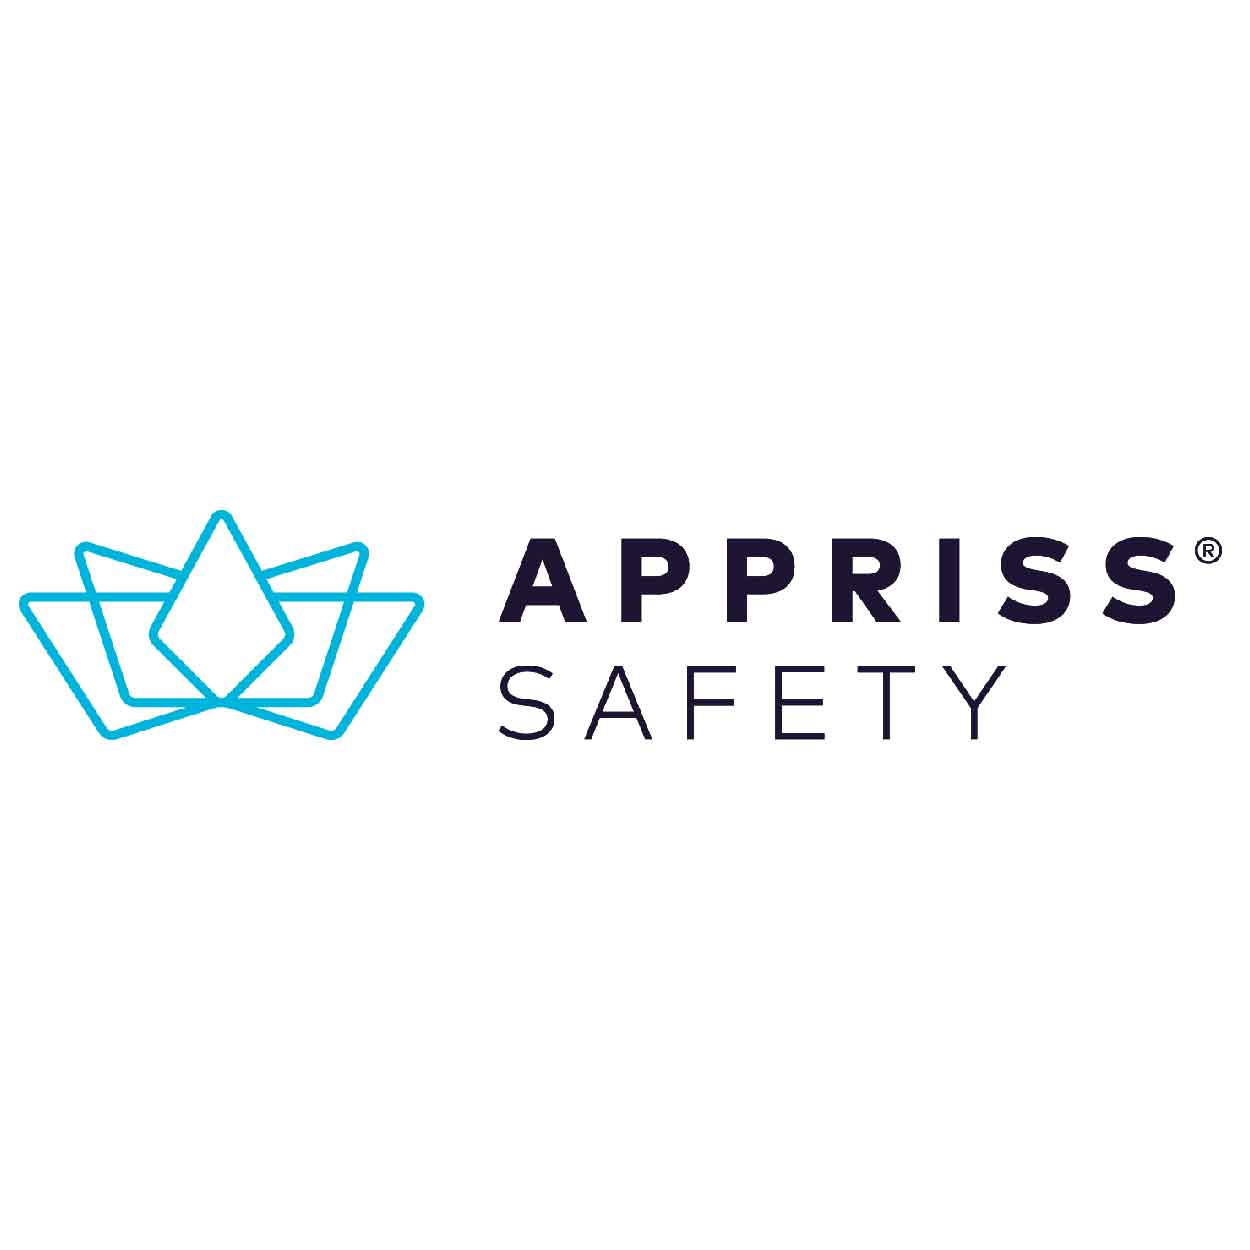 Apprisssafety300-01